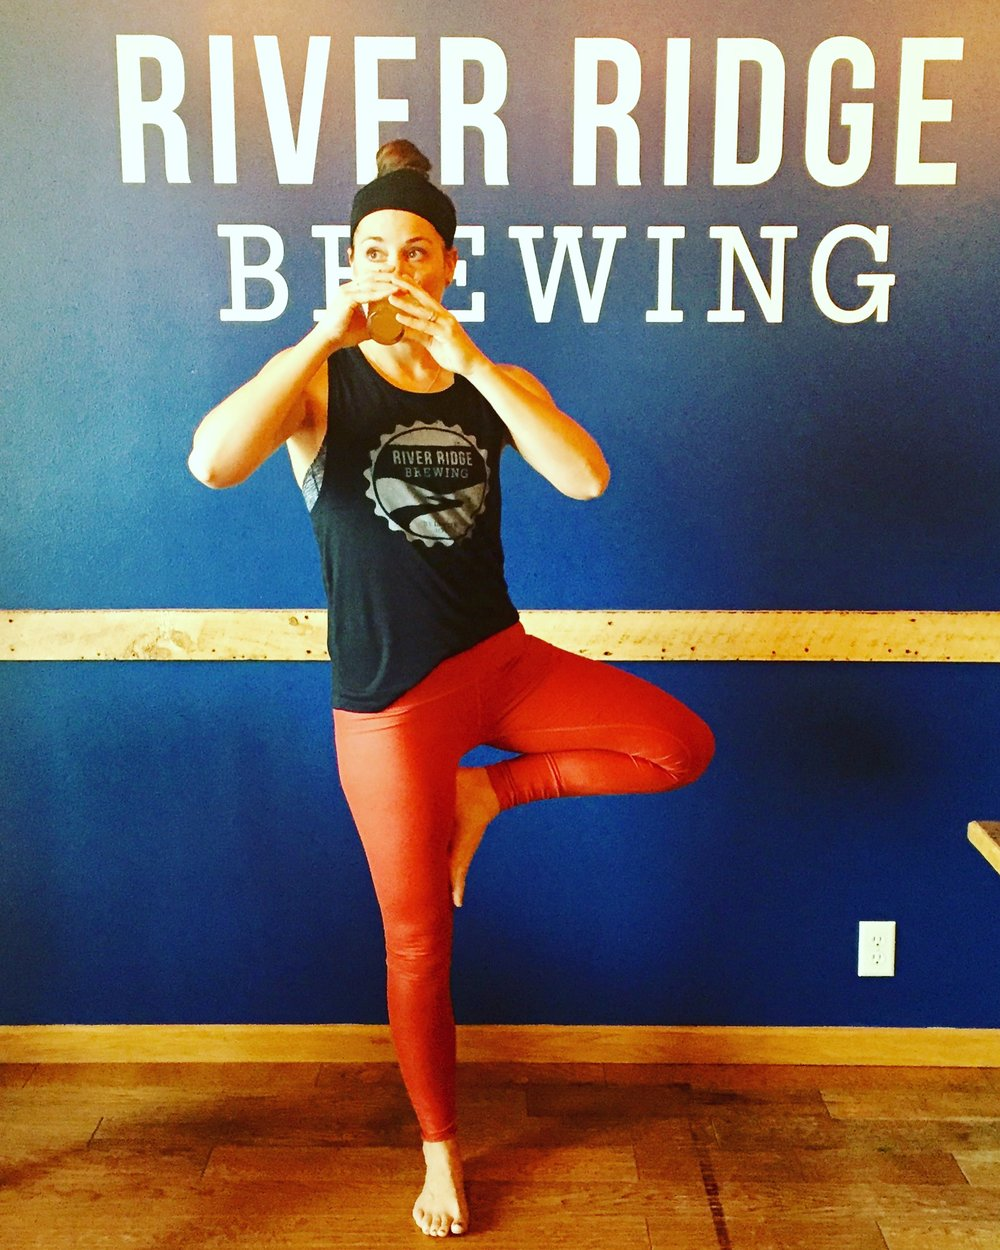 Namaste + Cheers! My 2 favorite things - BEER & YOGA! By far my favorite event we do at River Ridge Brewing.